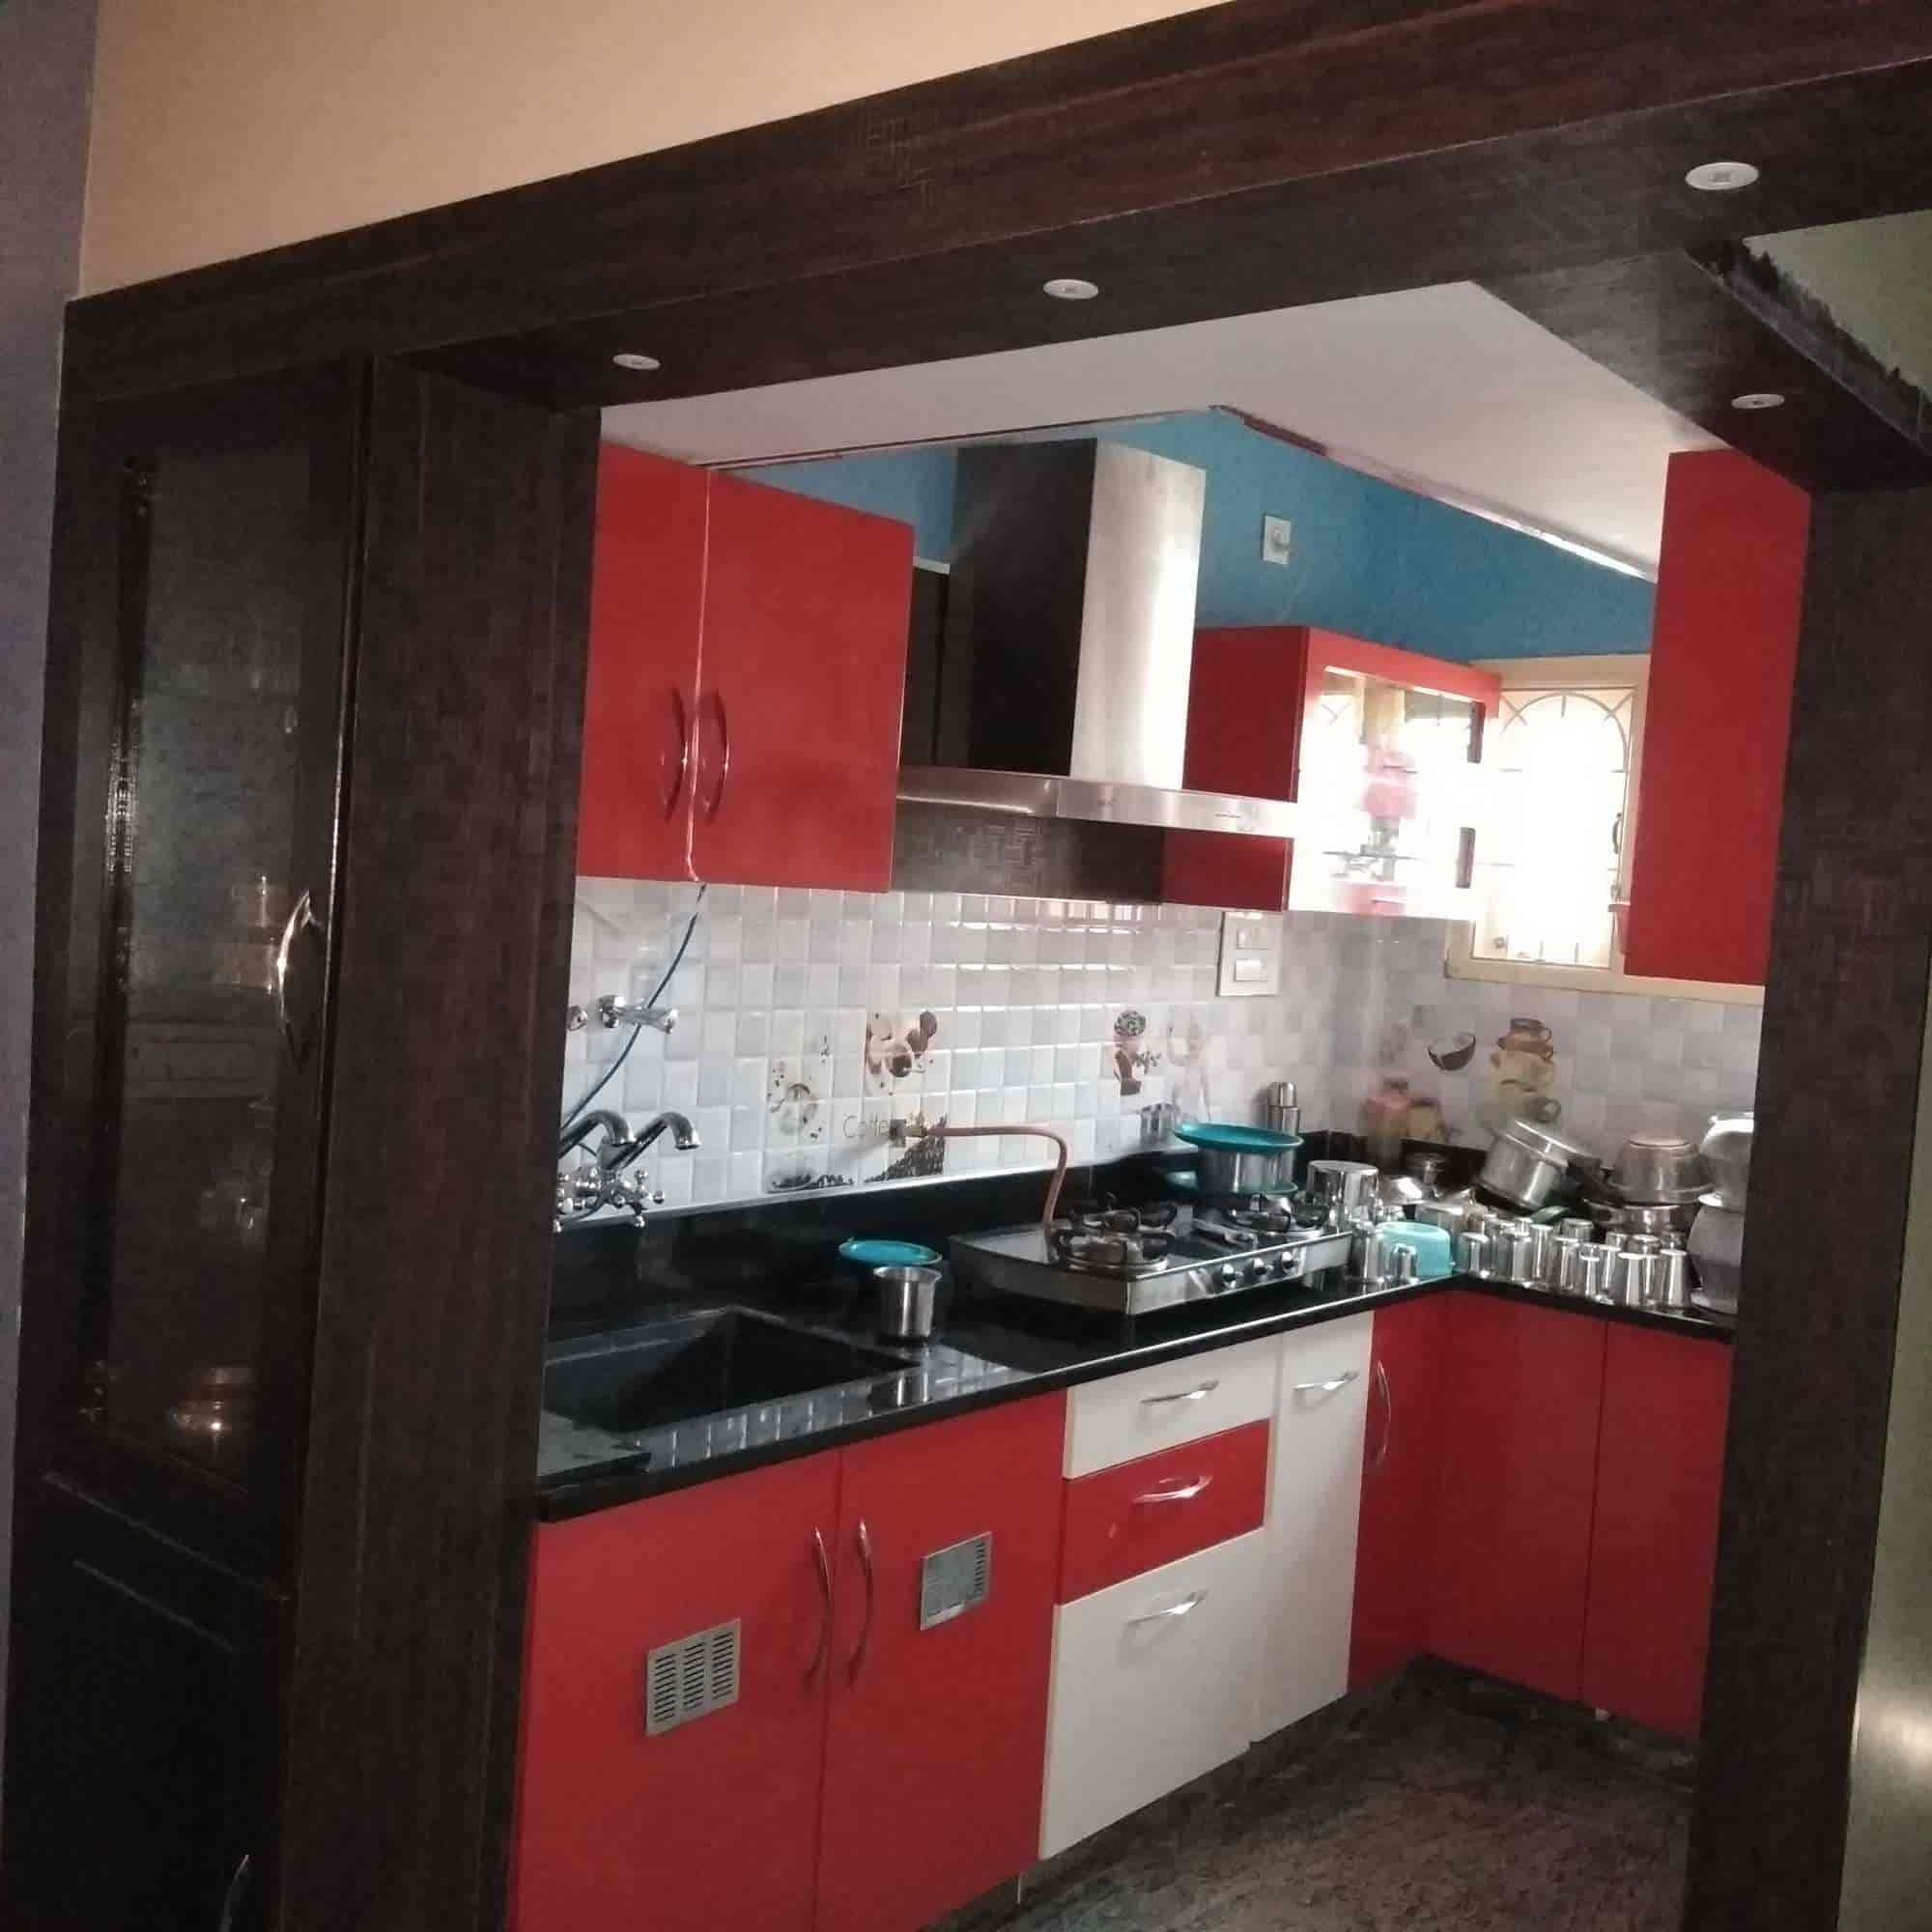 western kitchen interiors photos tk layout mysore pictures rh justdial com small kitchen interior photos kitchen photos interior design